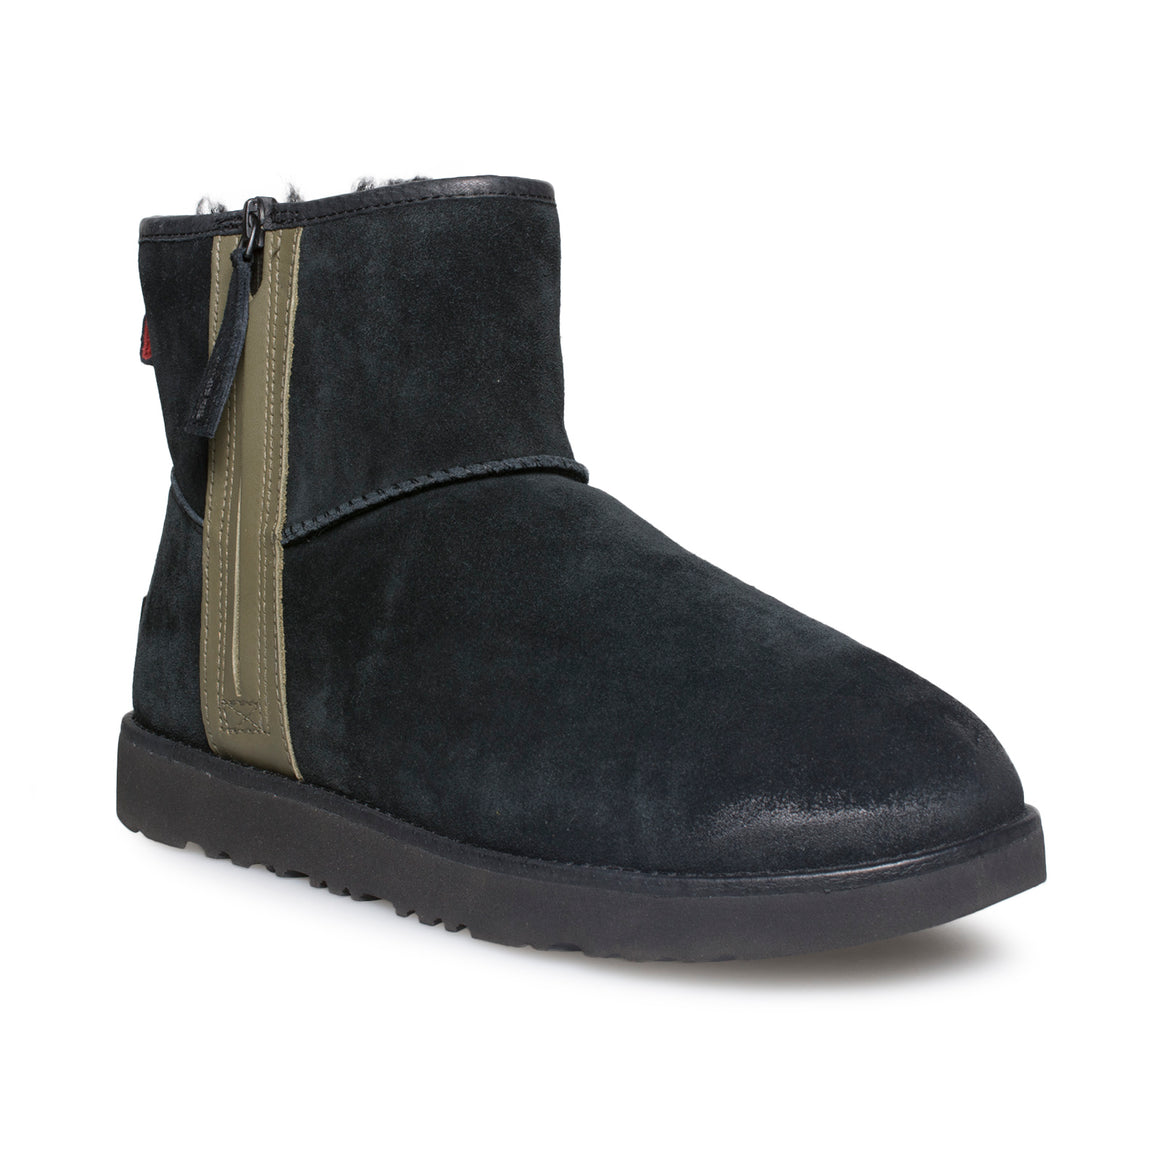 UGG Classic Mini Zip Waterproof Black Boots